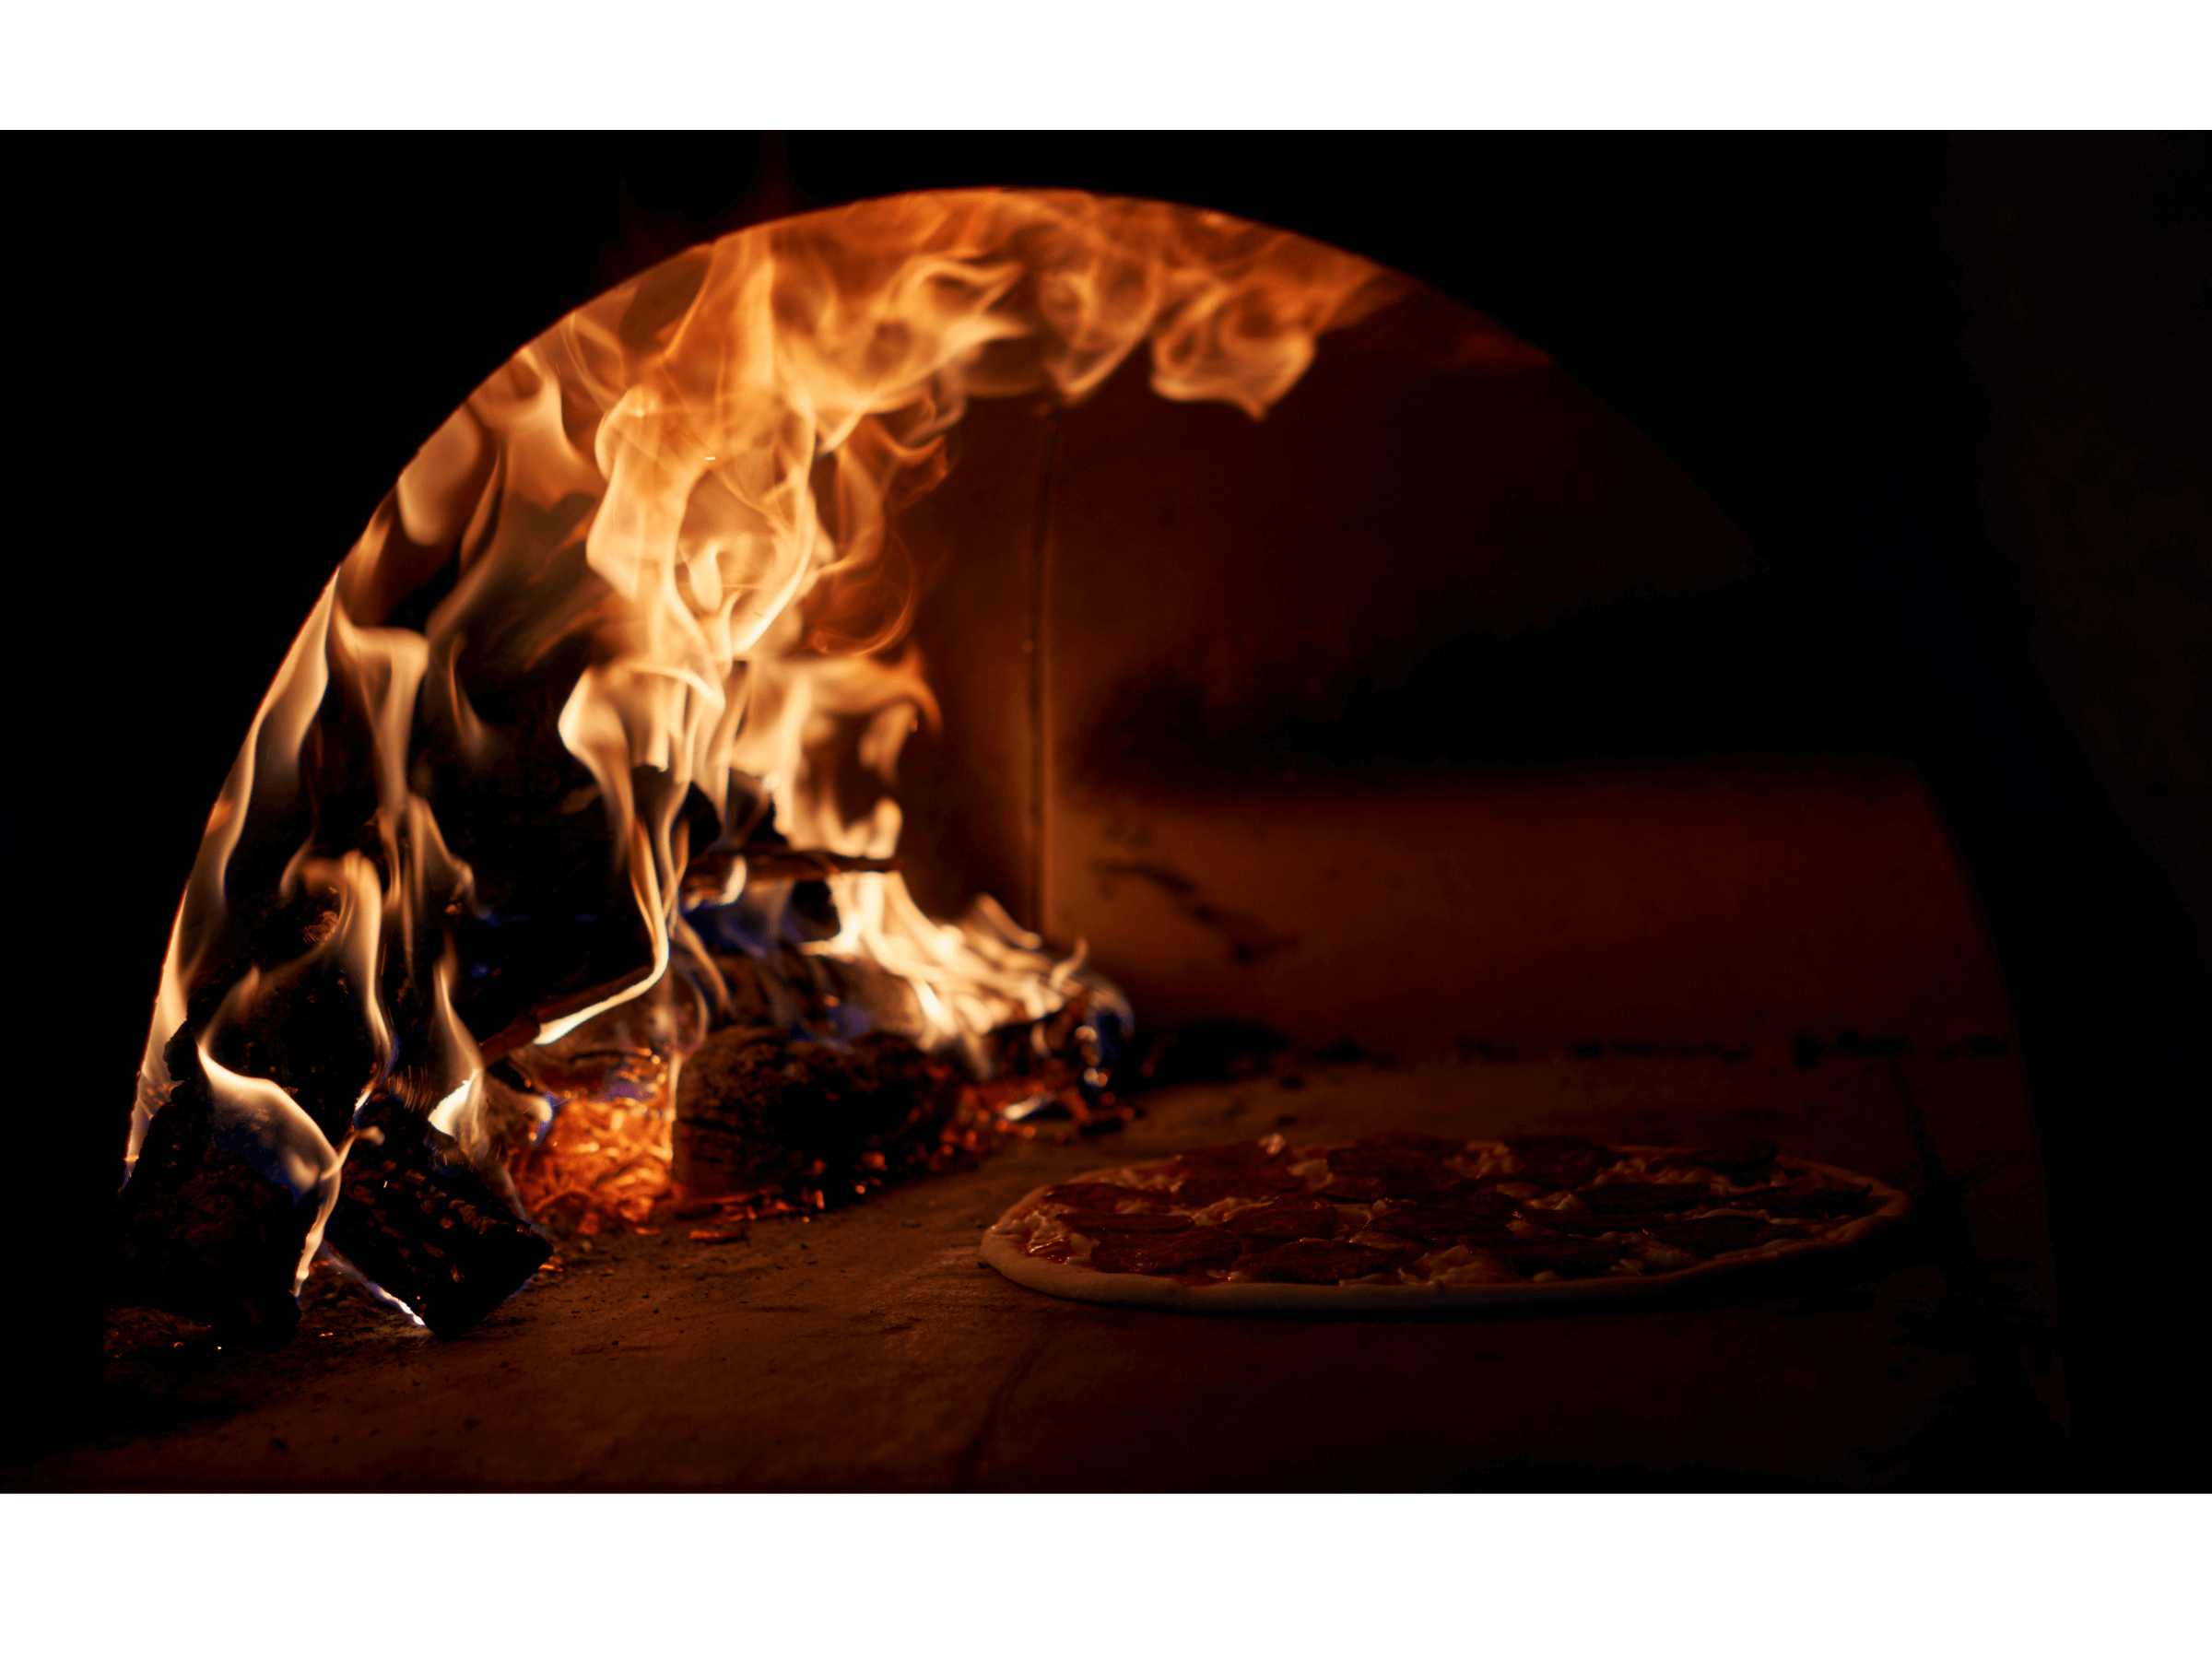 Cooking pizza in a pizza oven